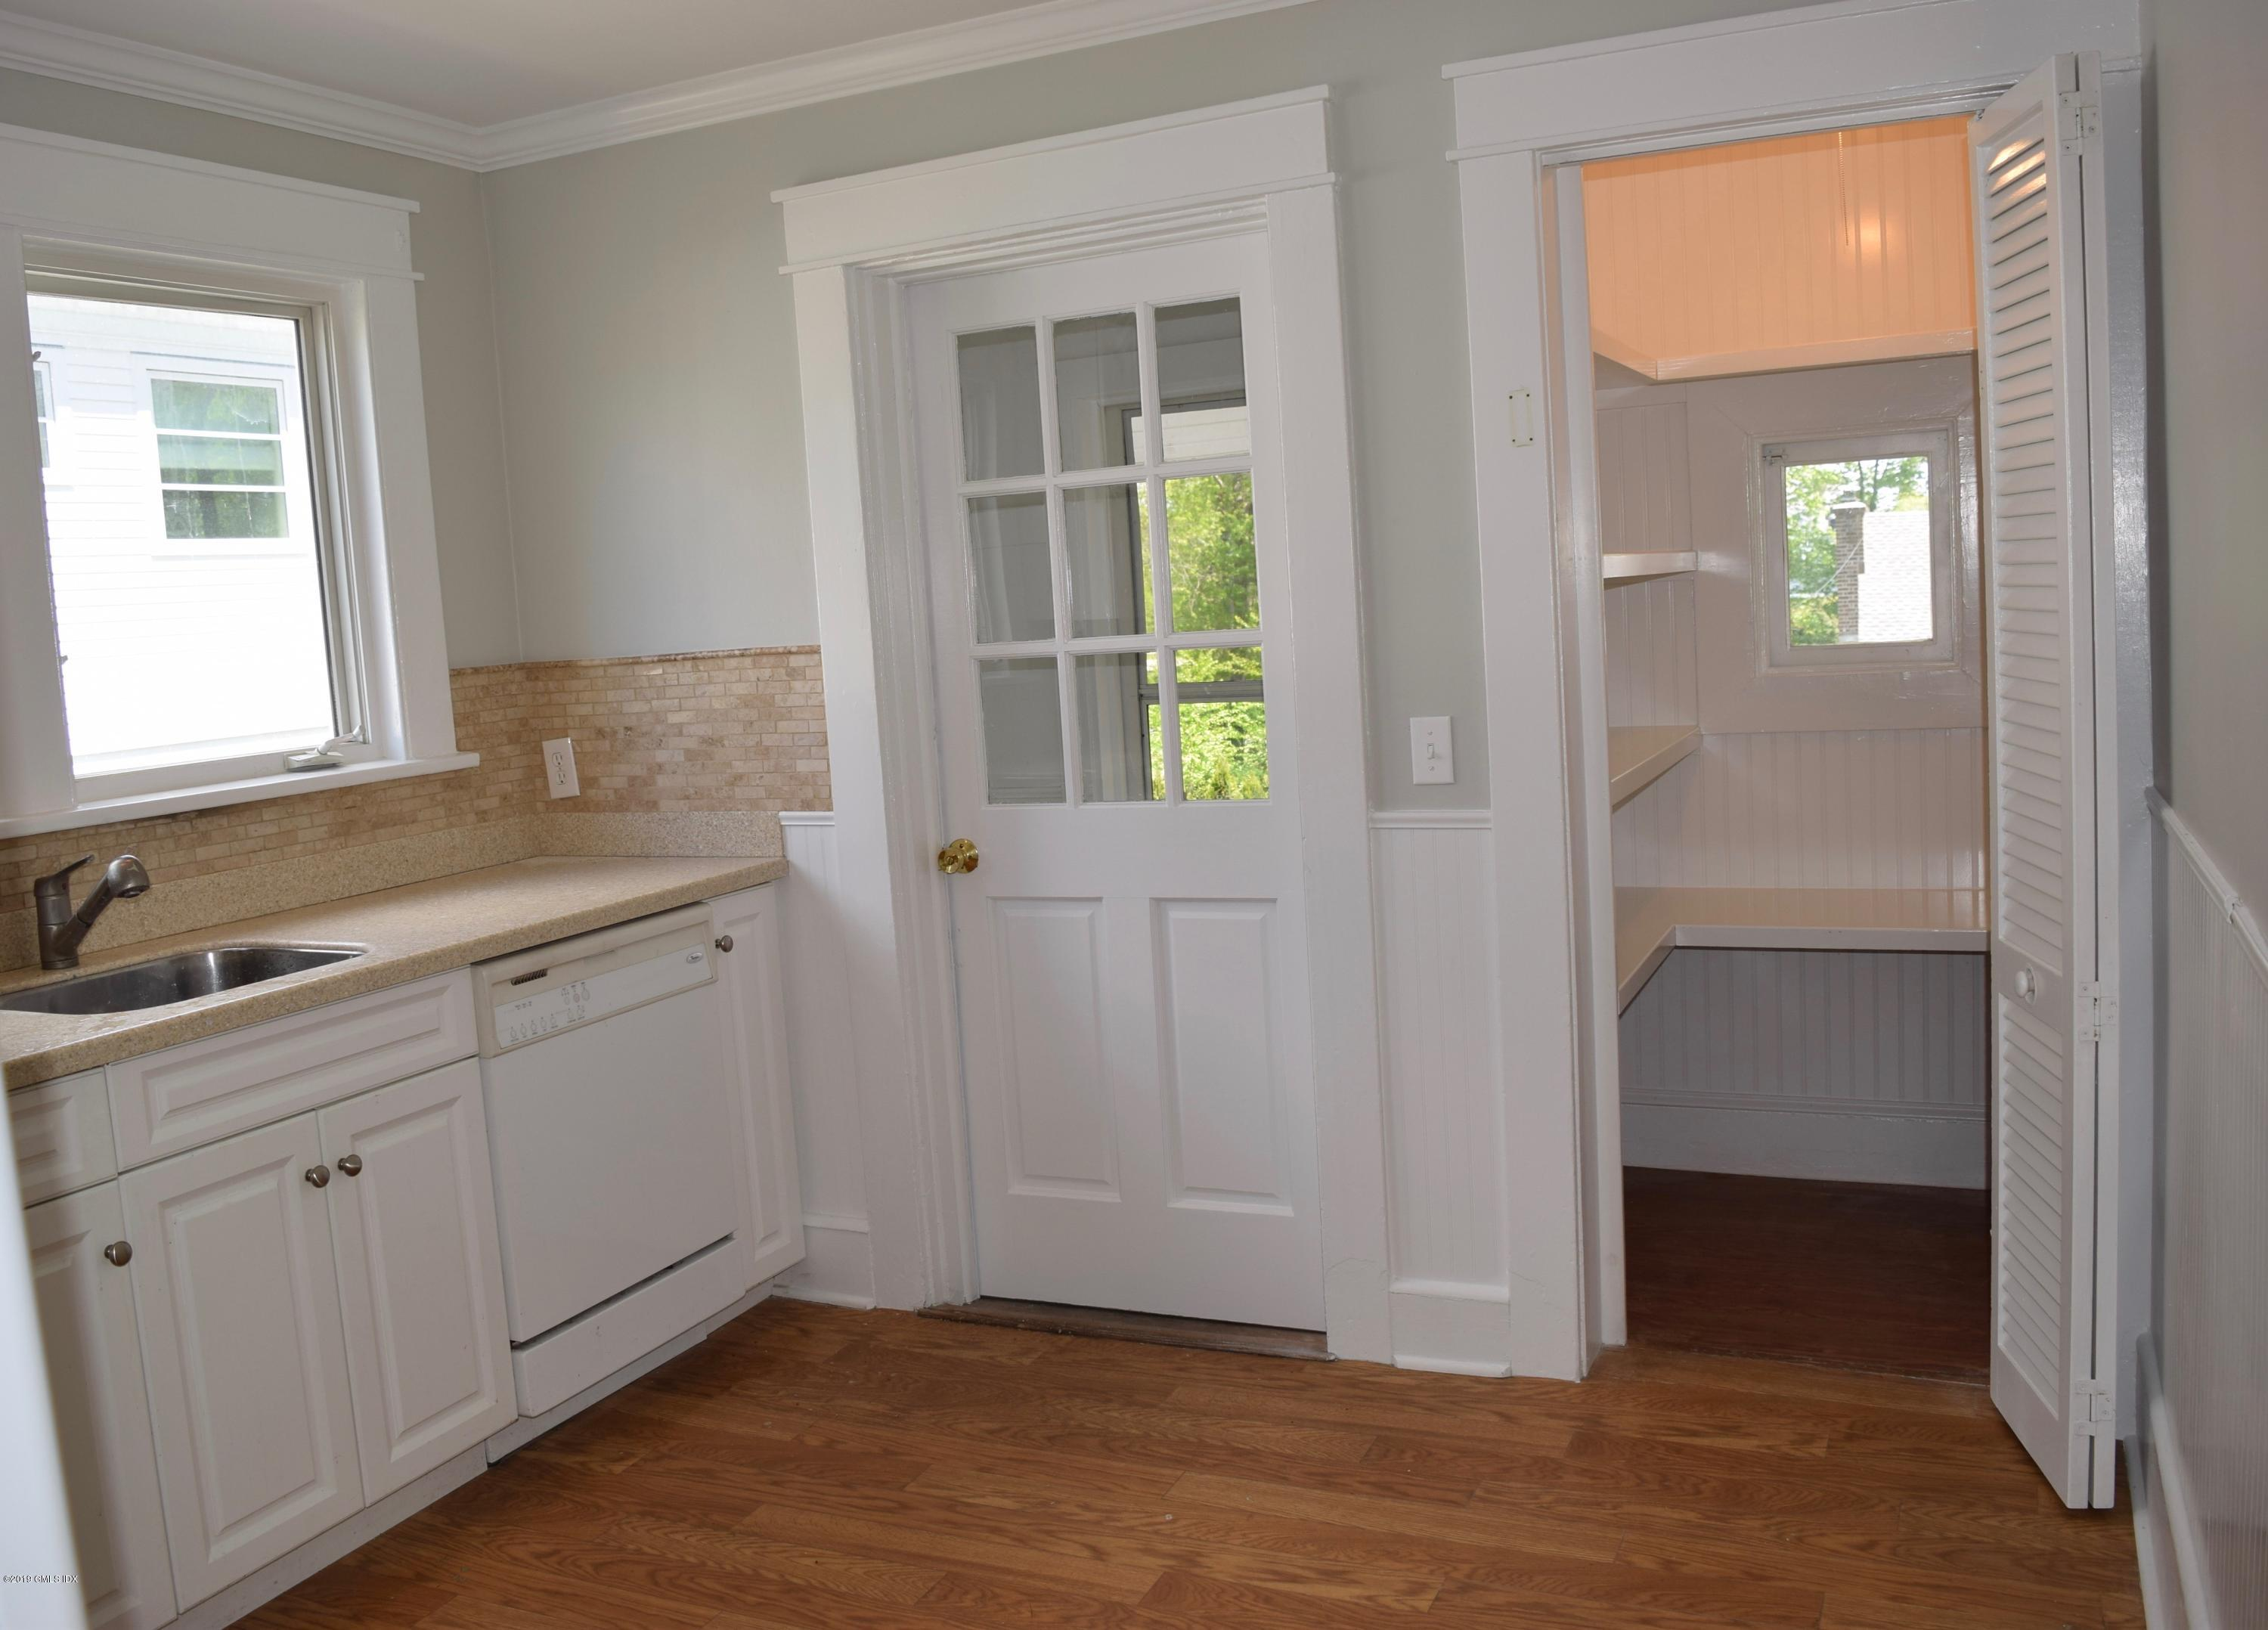 4 Highview Avenue,Old Greenwich,Connecticut 06870,3 Bedrooms Bedrooms,1 BathroomBathrooms,Single family,Highview,106973